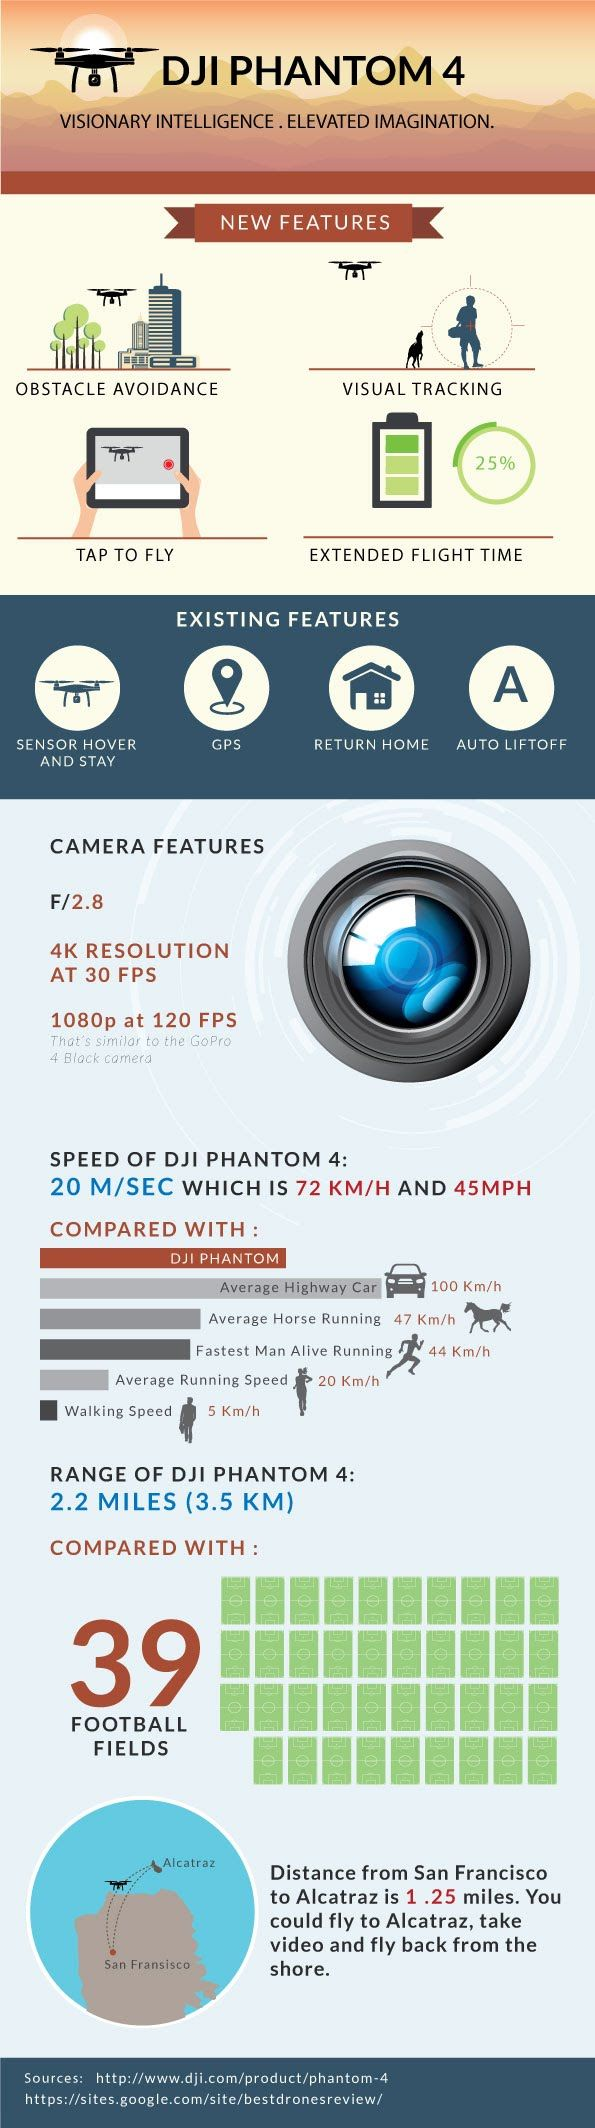 Infographic Of The Day: DJI Phantom 4 Drone Performance Information